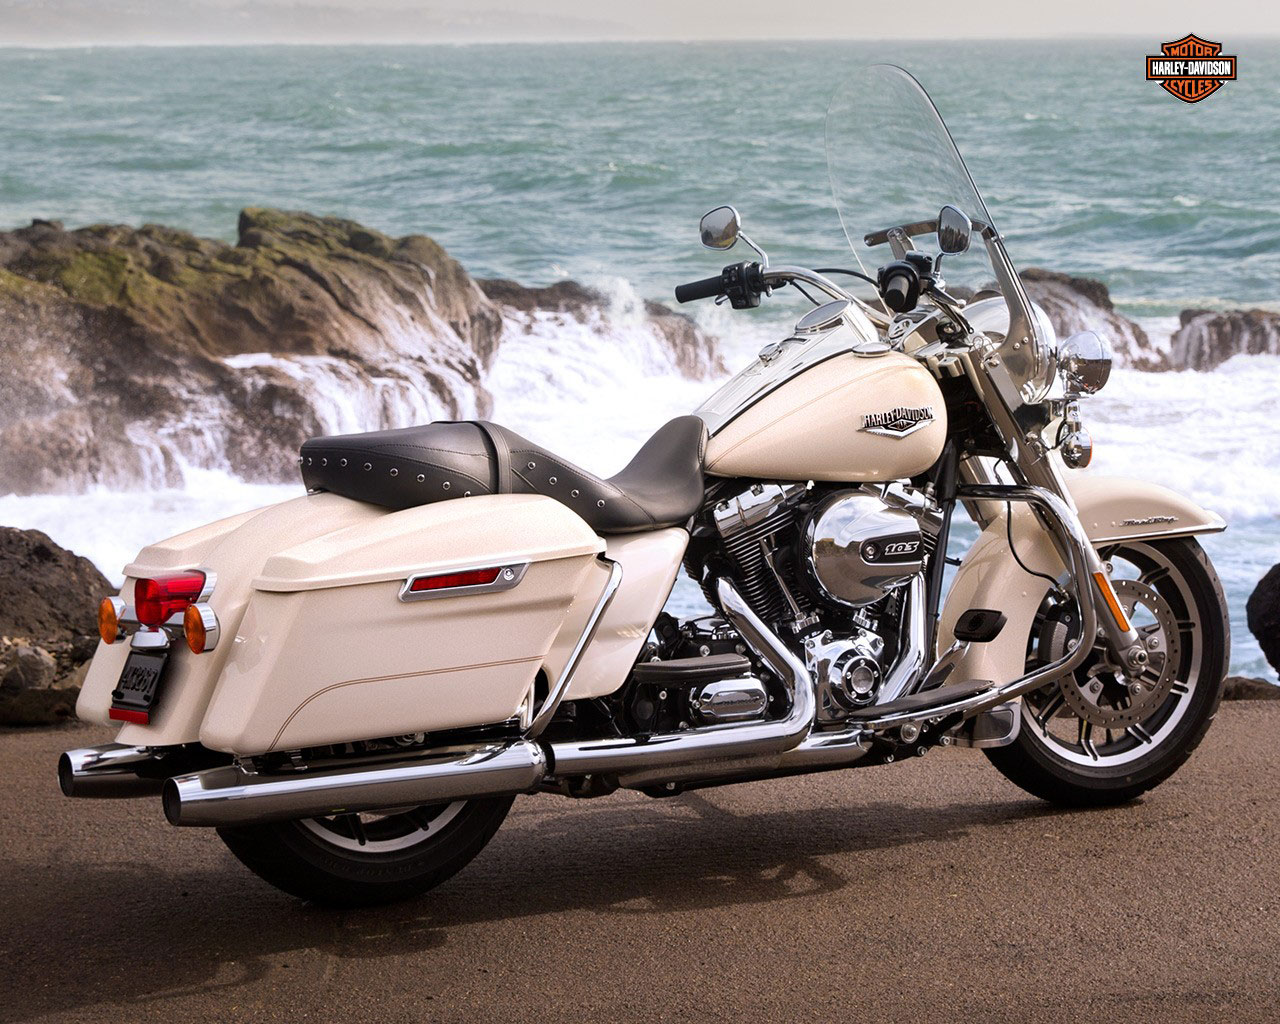 pc wallpaper Harley-Davidson FLHR Road King 2015 V Twin